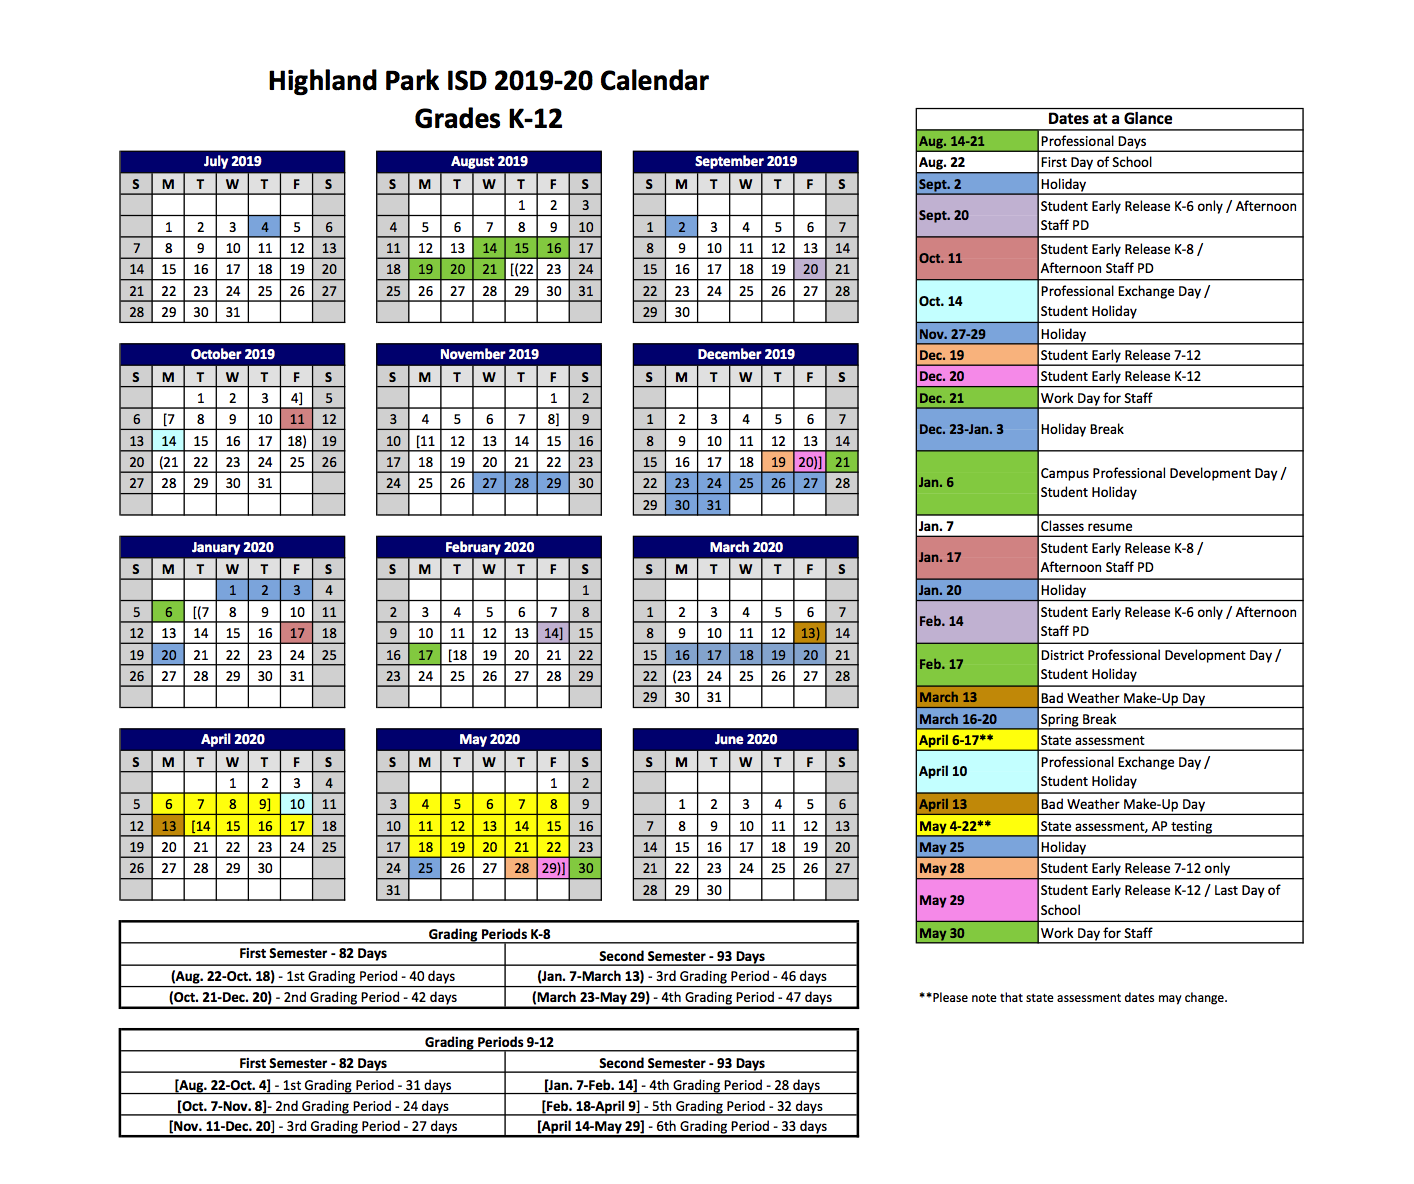 Chicago Events Calendar 2020 2019 2020 HPISD Calendar – Calendars – Highland Park Independent